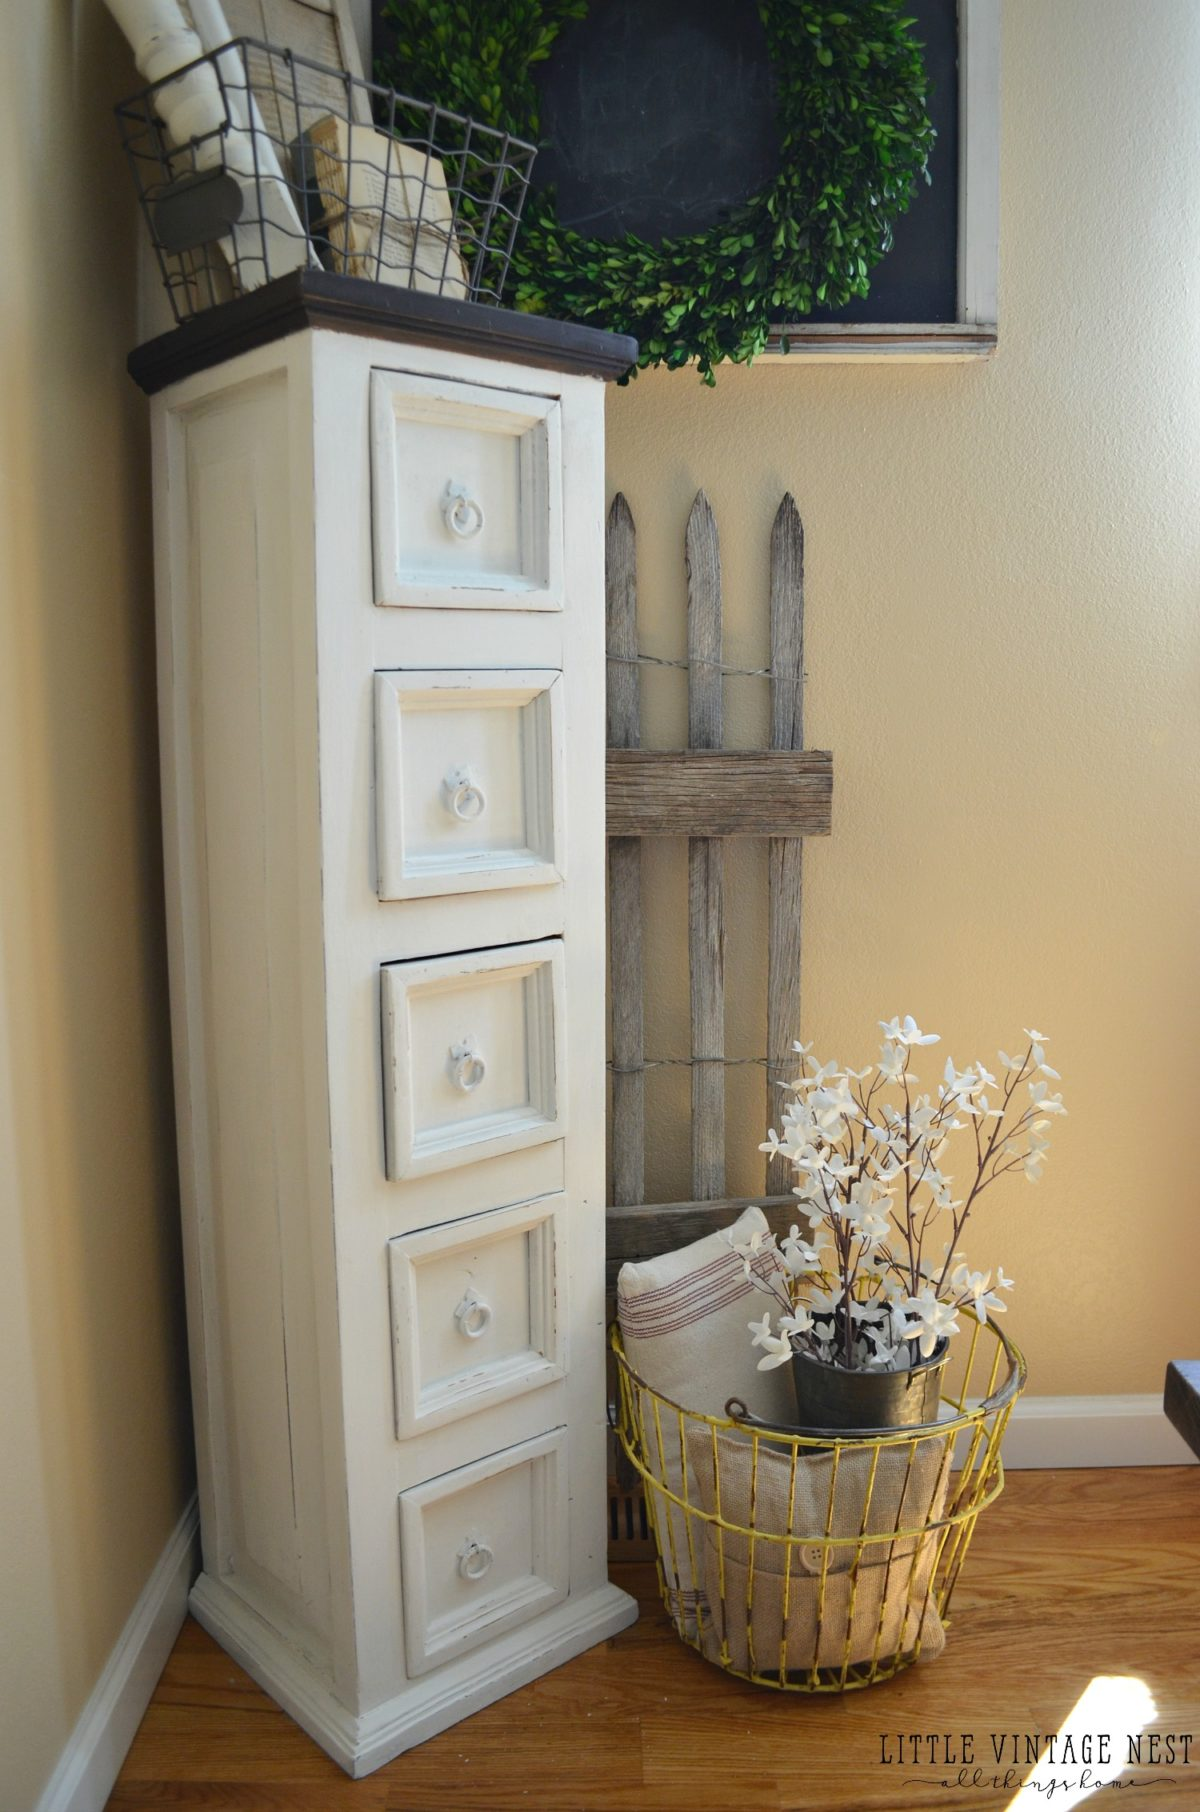 farmhouse decor dining room storage cabinet - Dining Room Storage Cabinets